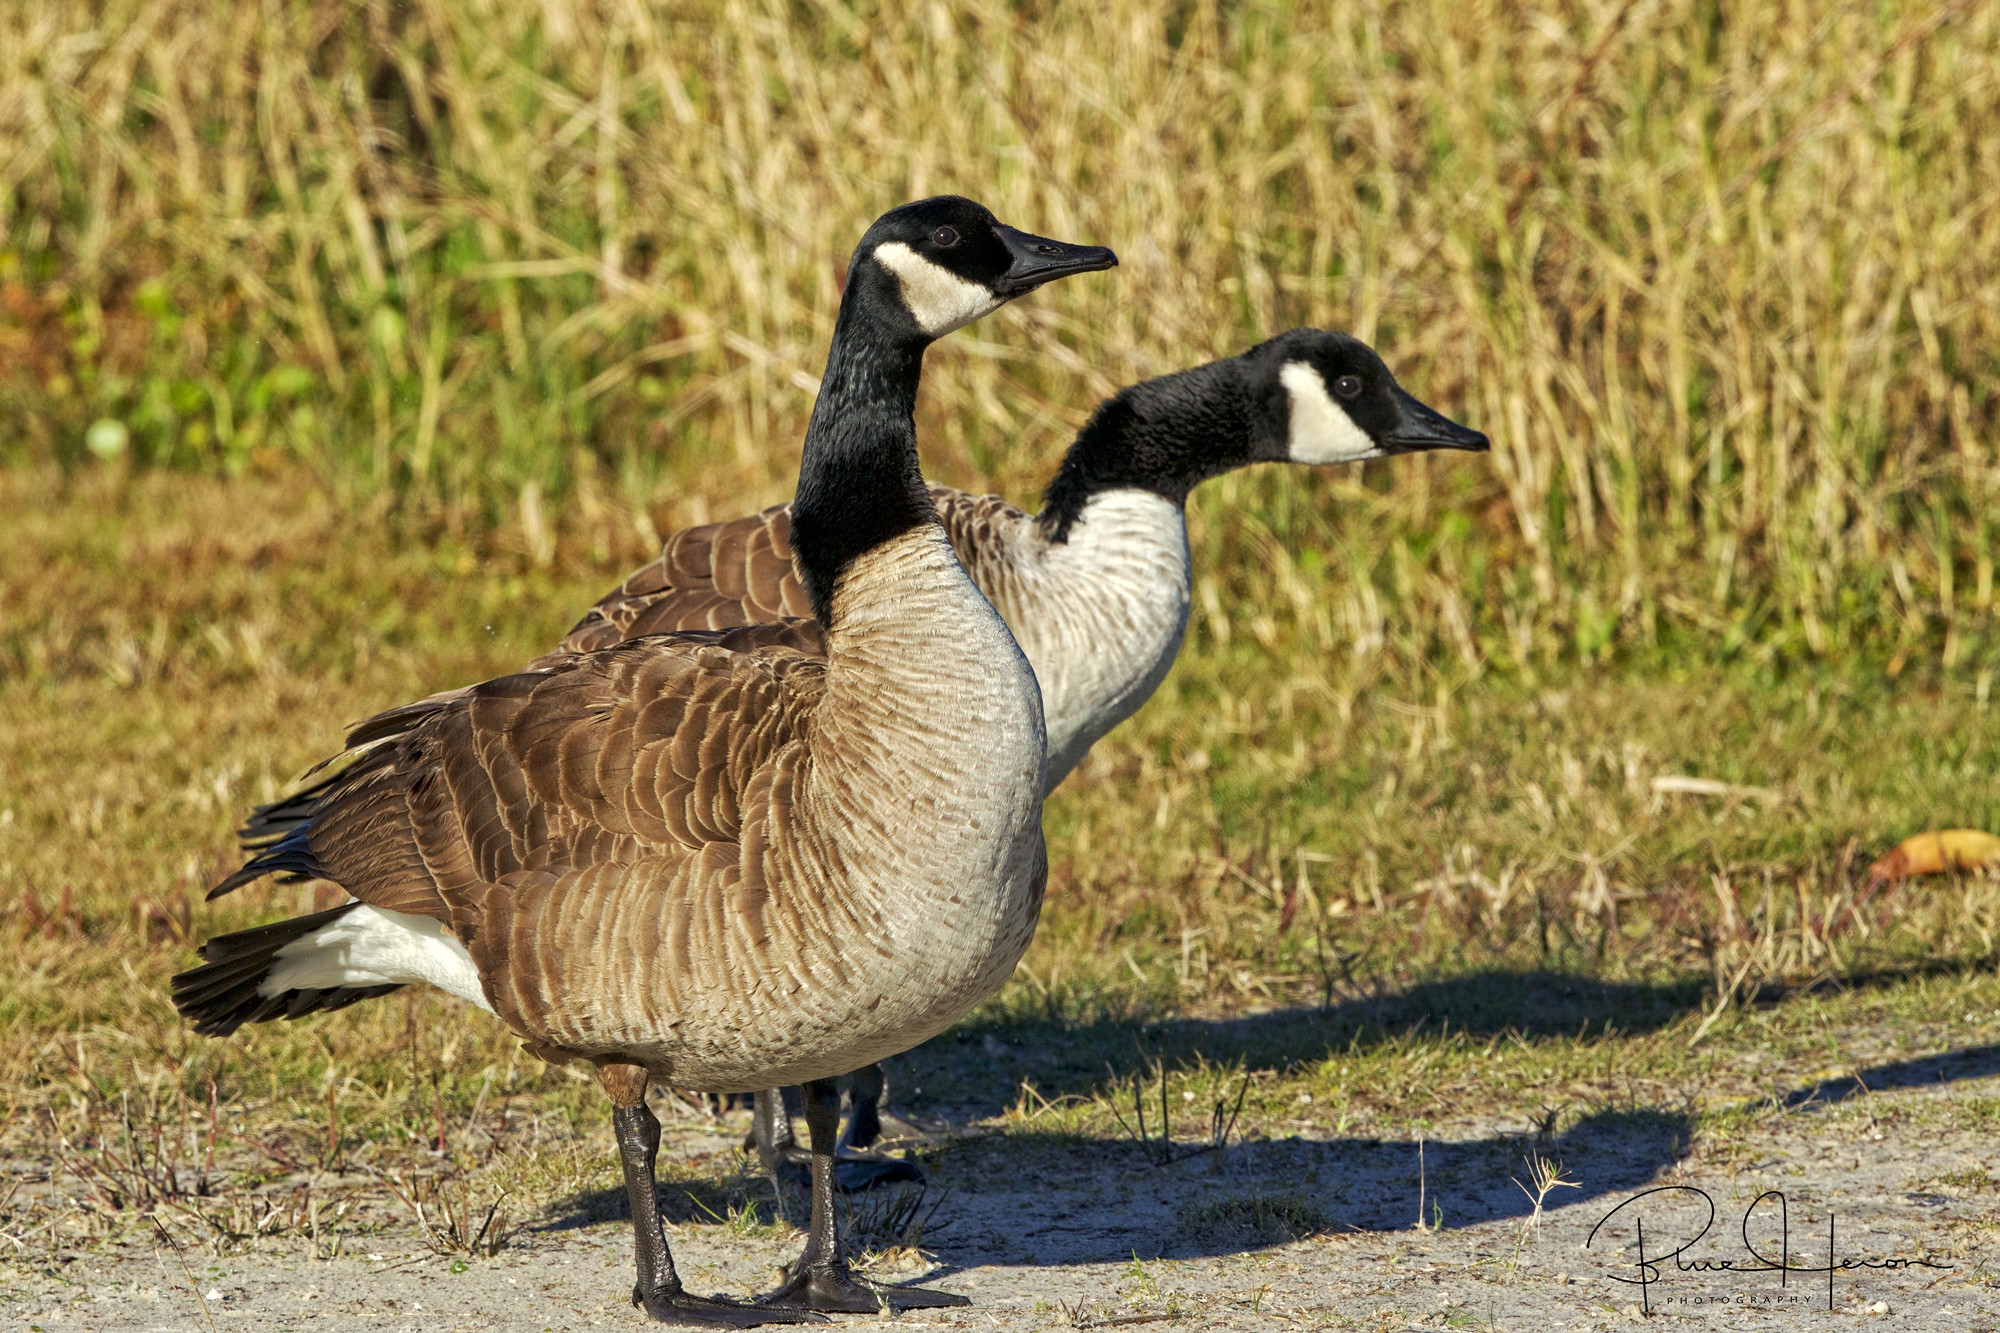 A pair of Canada Geese honk obscene language at another pair across the pond